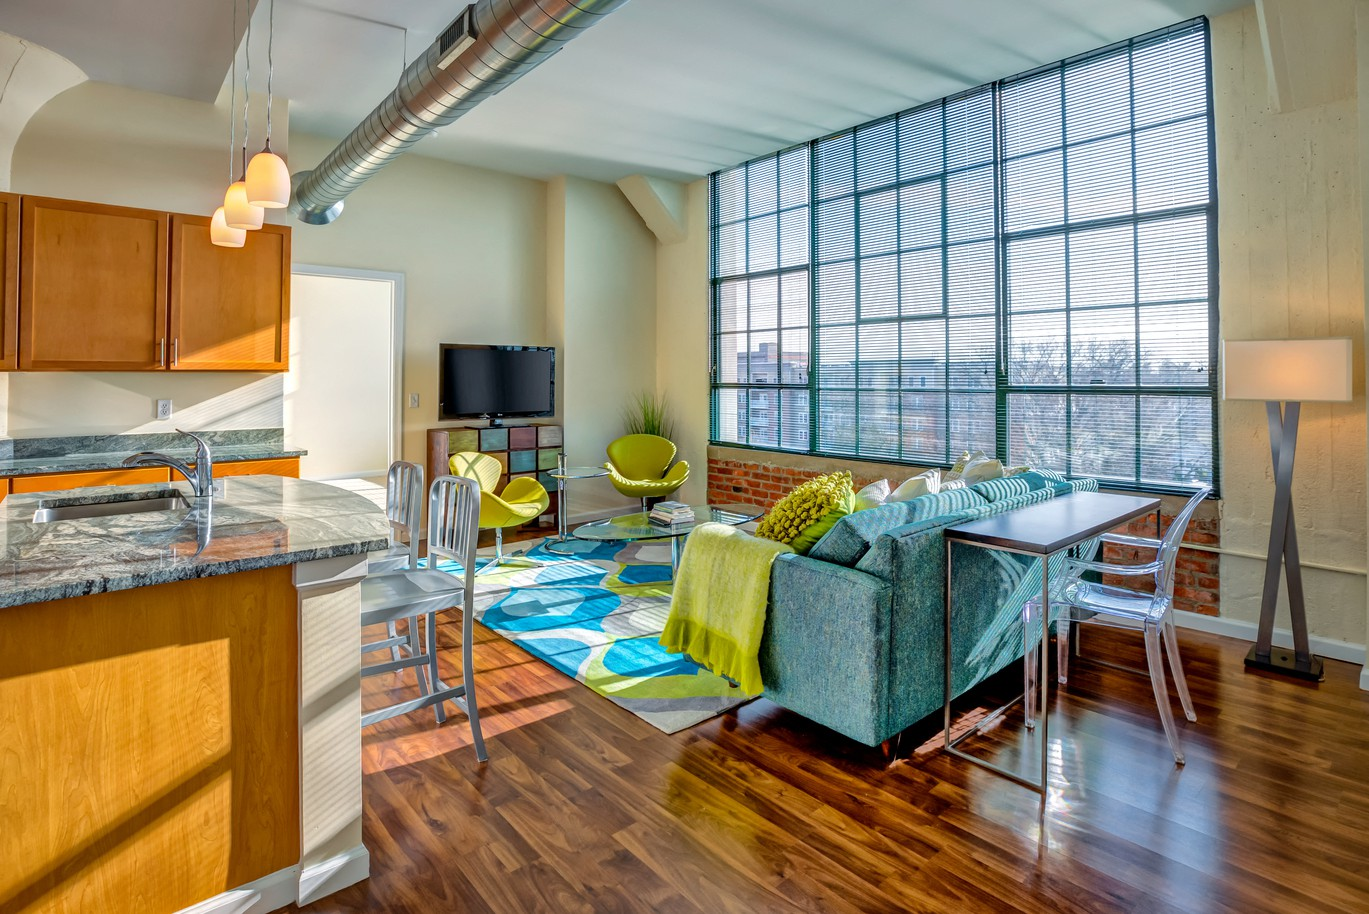 Apartments Near Manhattanville The Lofts at Yale & Towne for Manhattanville College Students in Purchase, NY